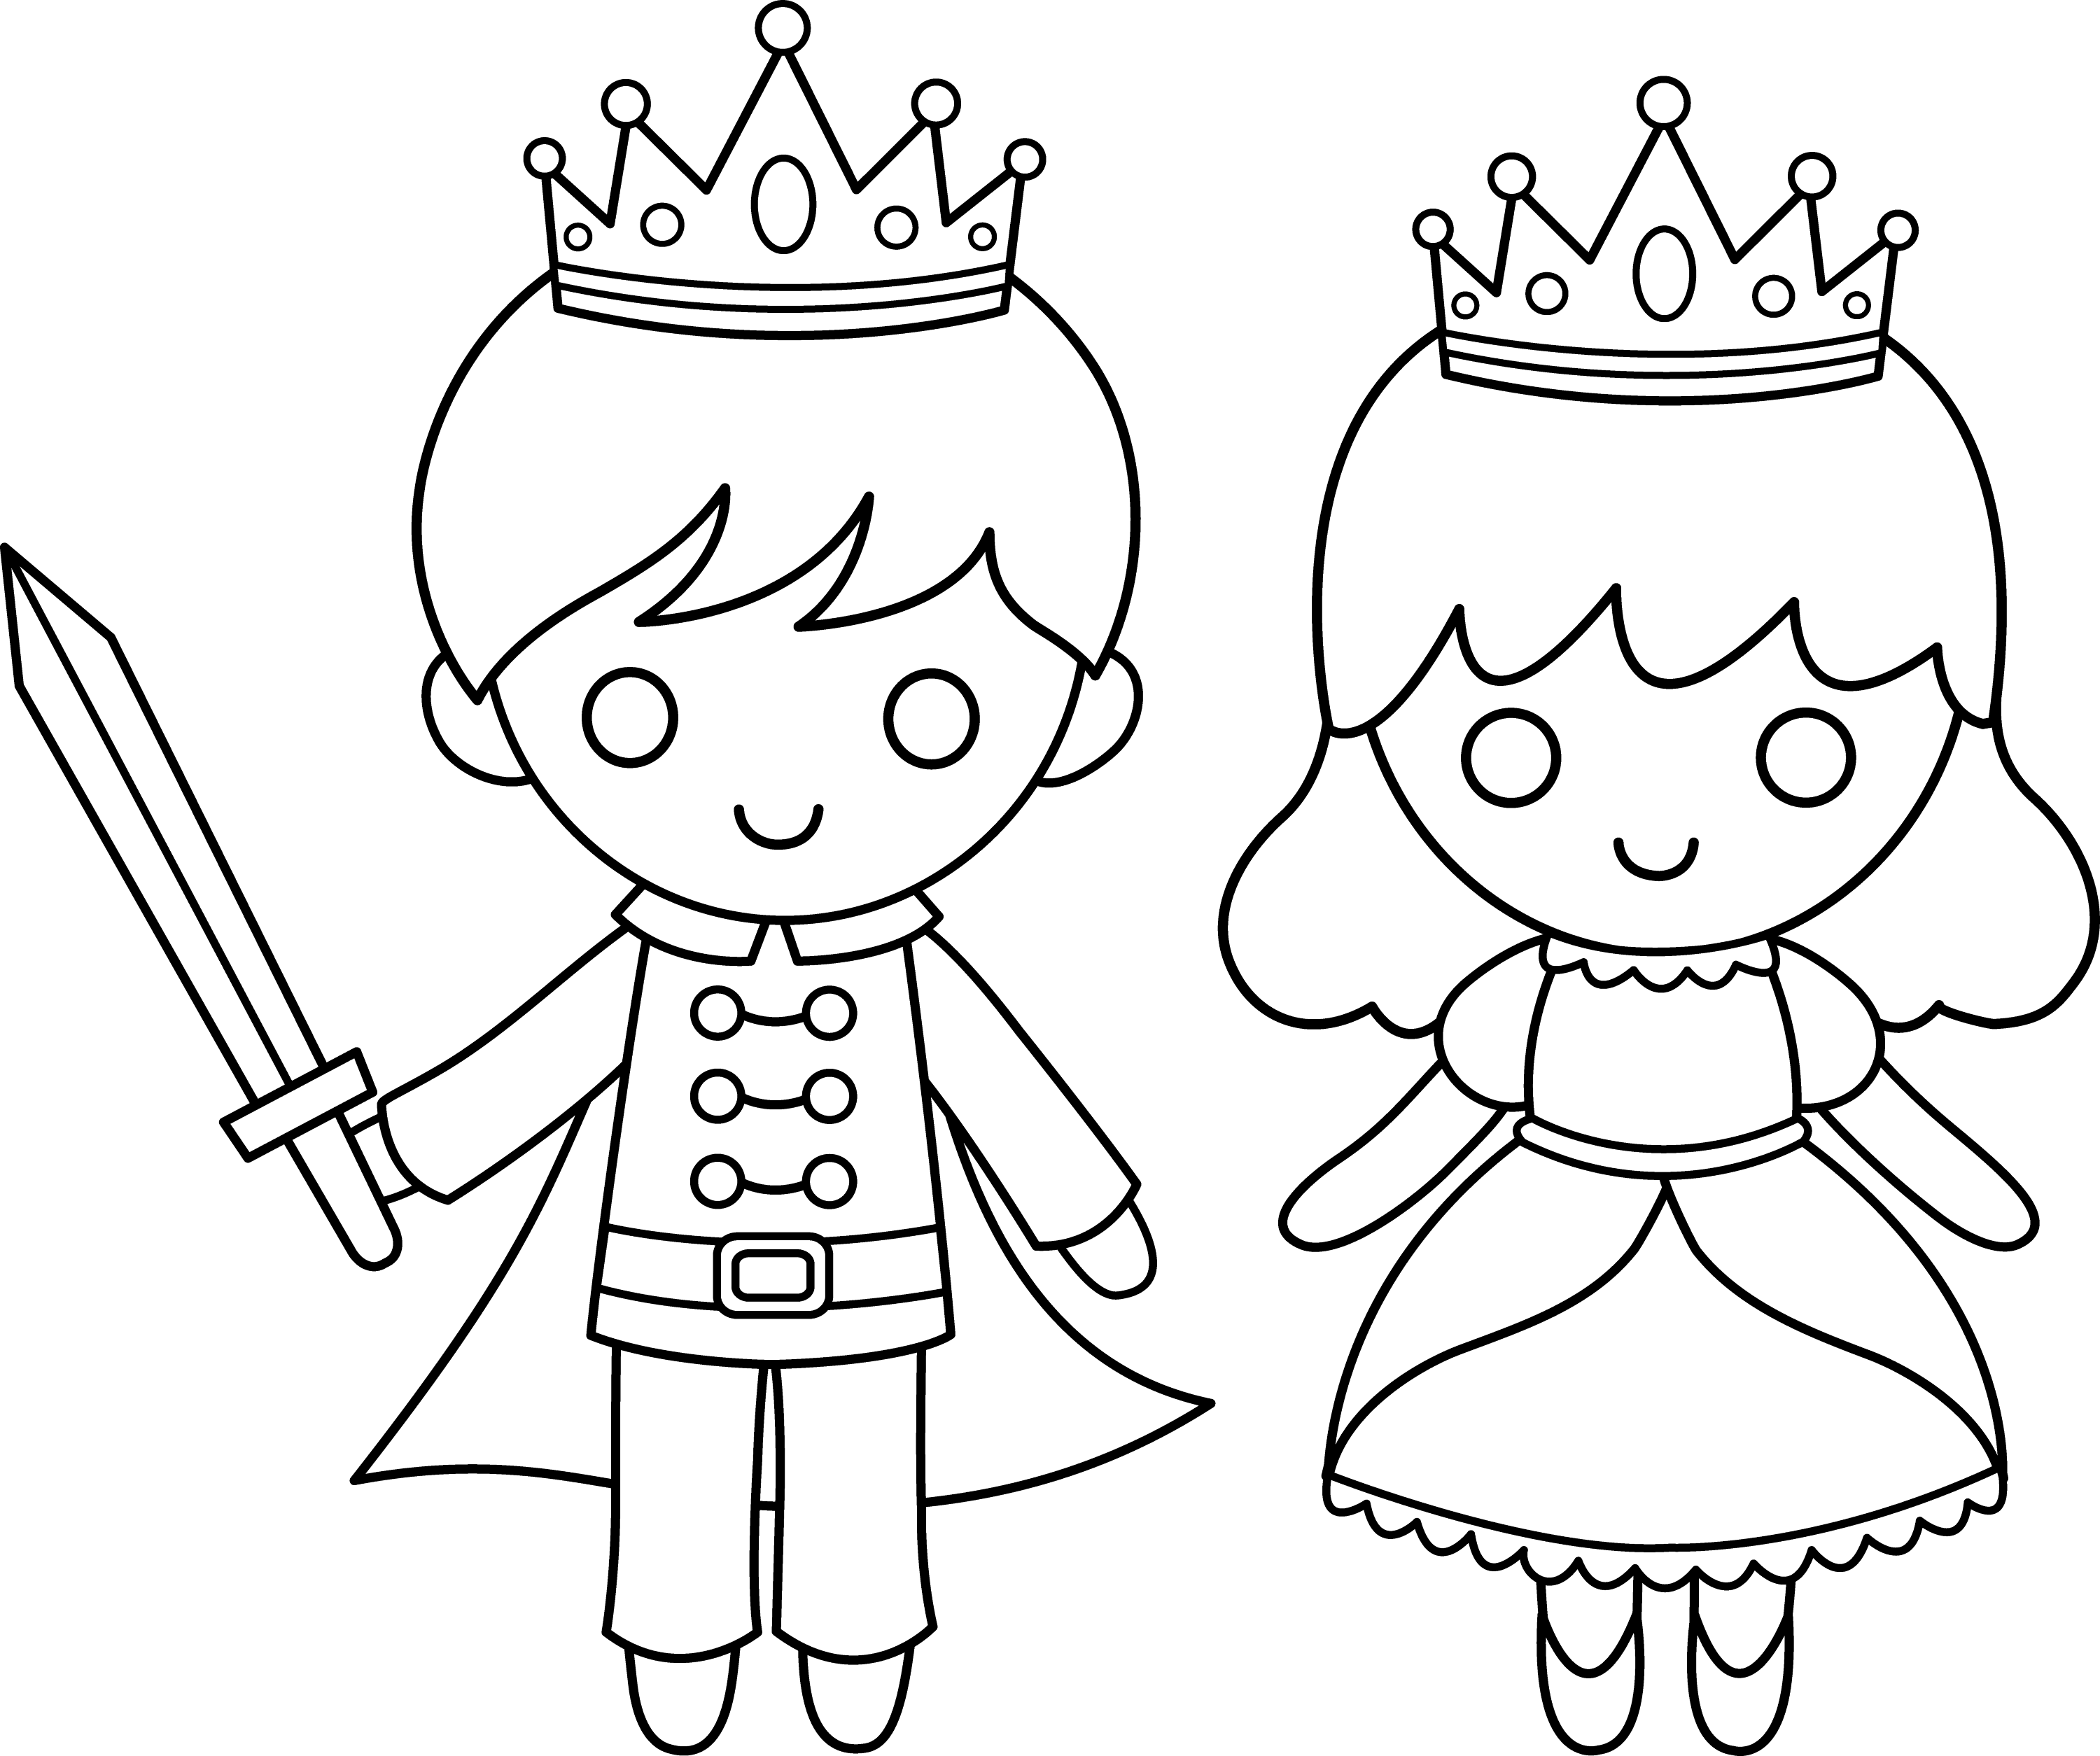 prince and princess line art free clip art